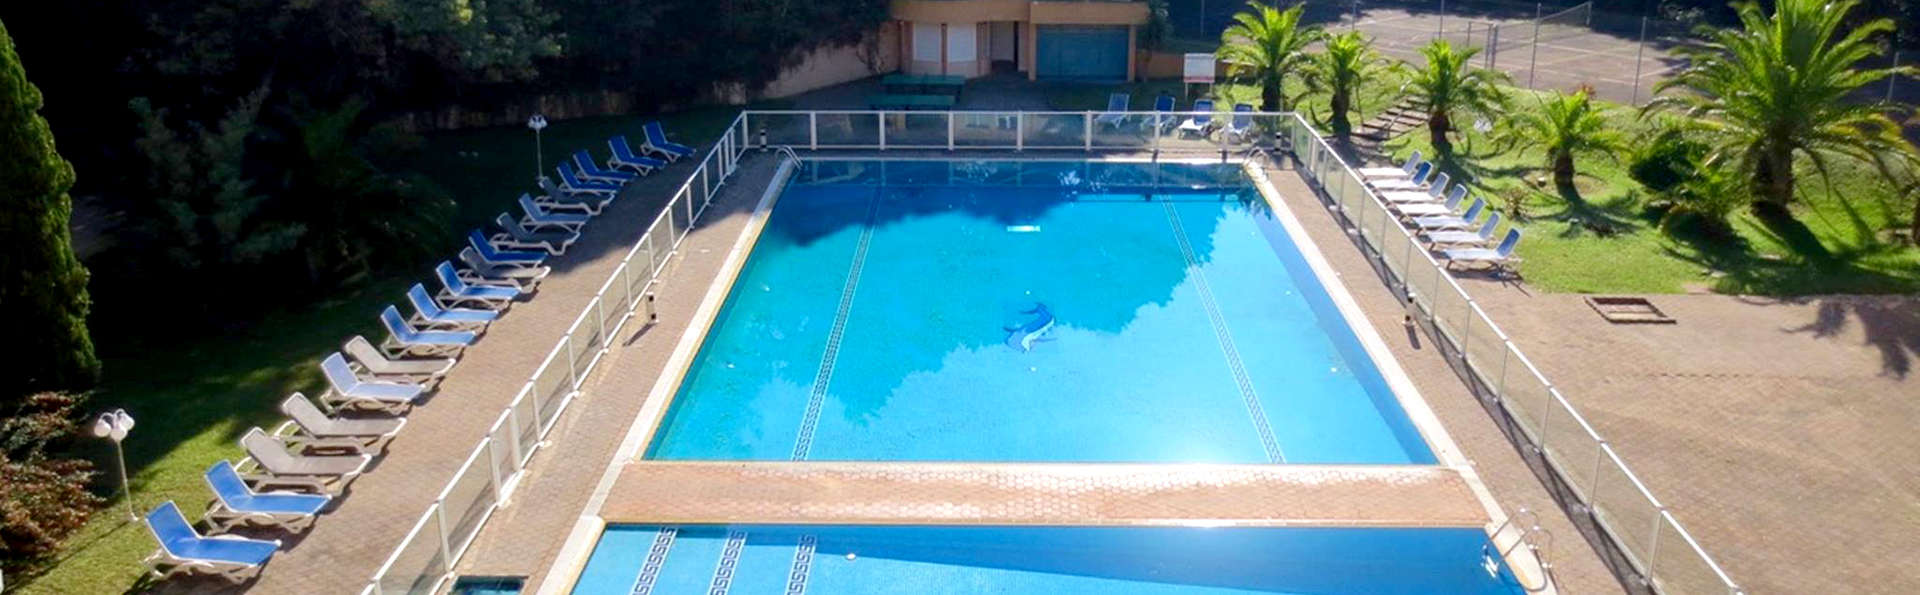 Hotel Residence Anglet Biarritz Parme 3 Anglet France